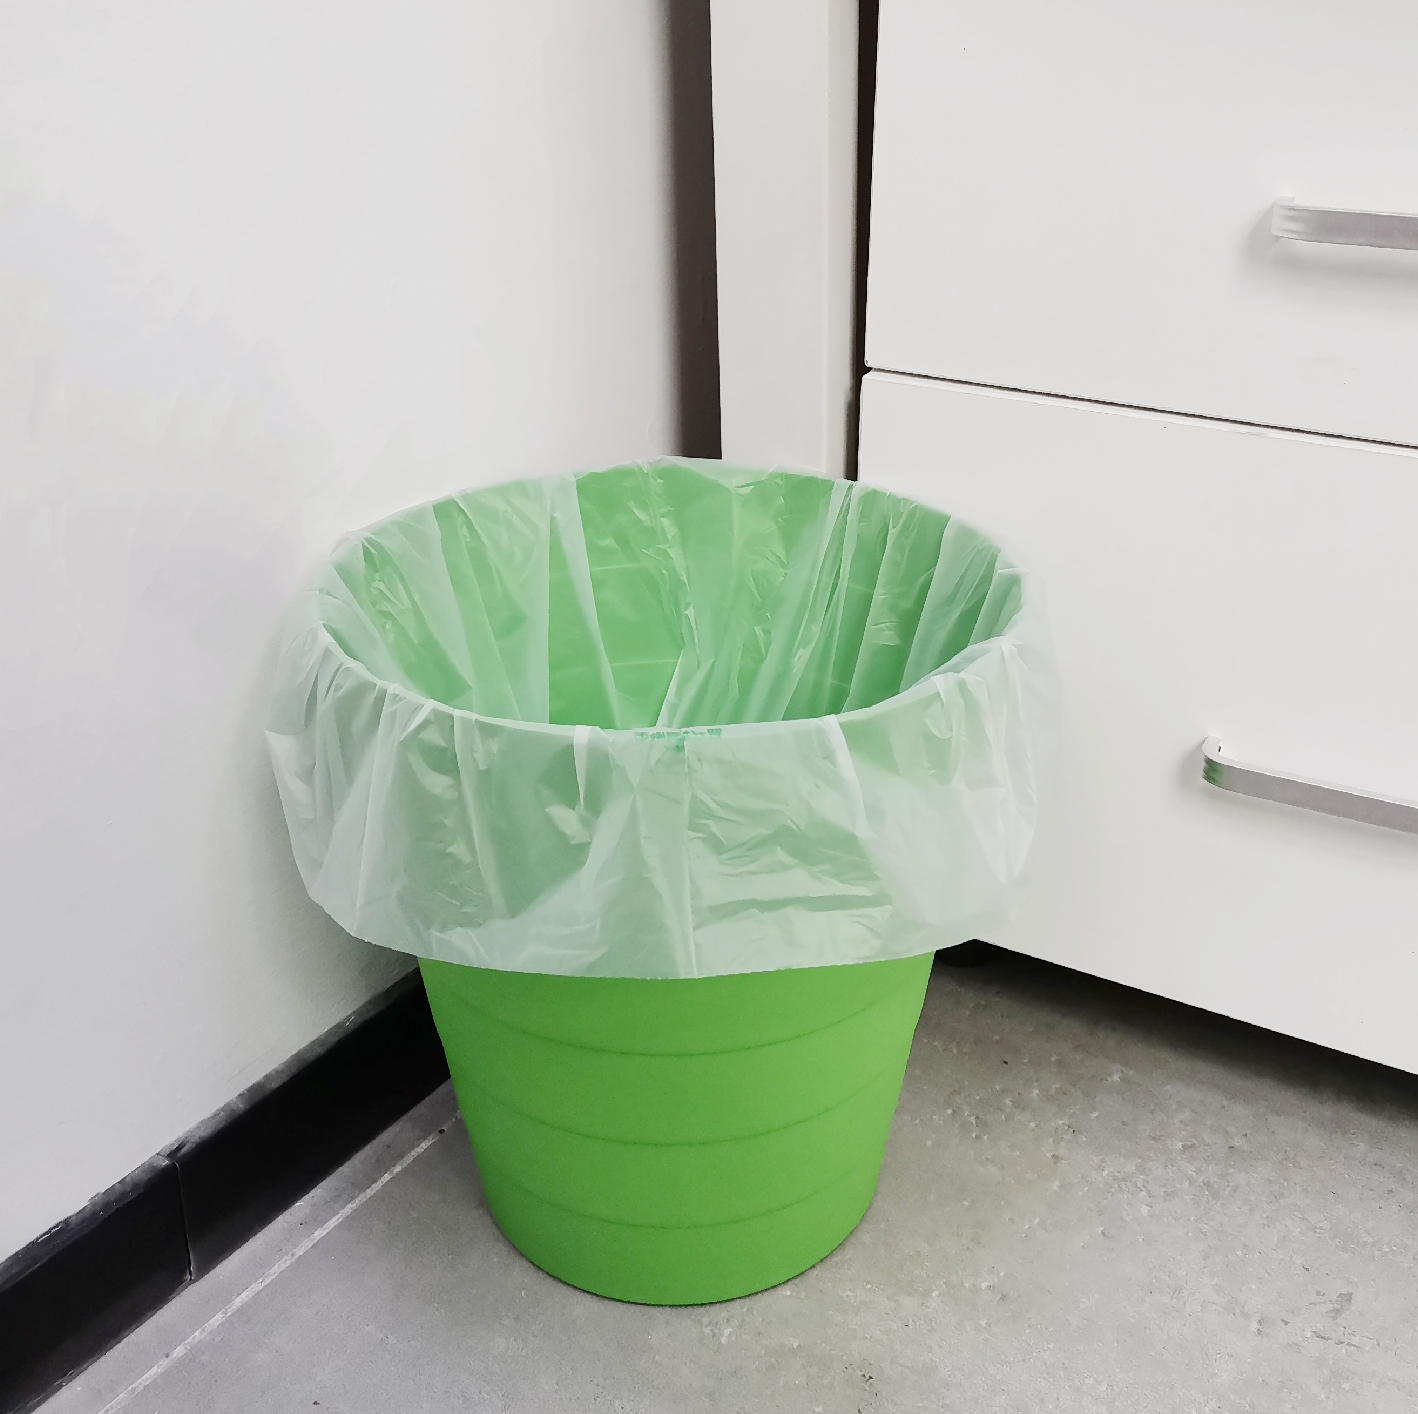 Biodegradable Leak-proof Garbage Bags